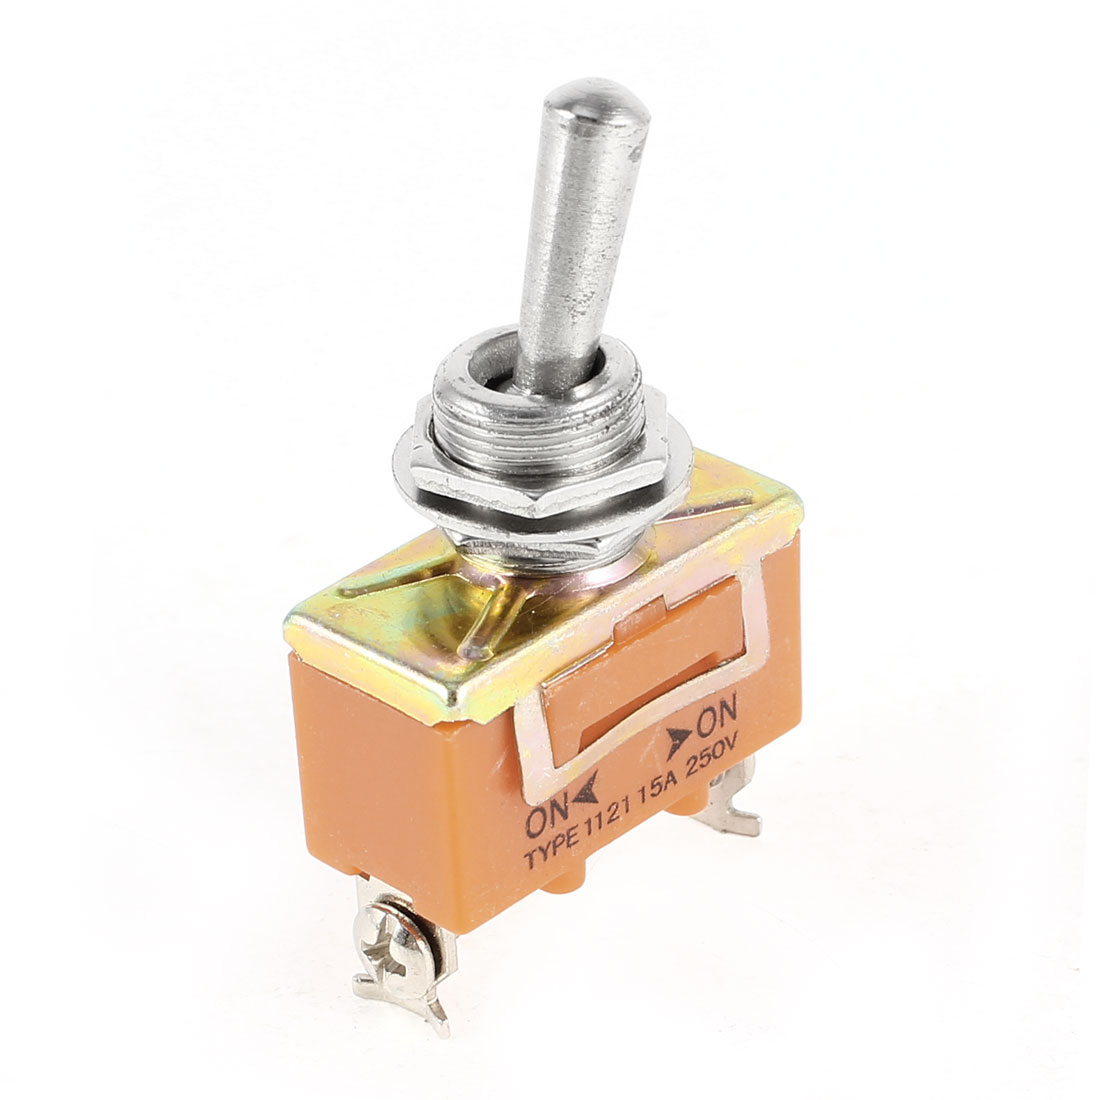 AC 250V 15A On/On 2 Position DPDT Toggle Switch Orange Replacement